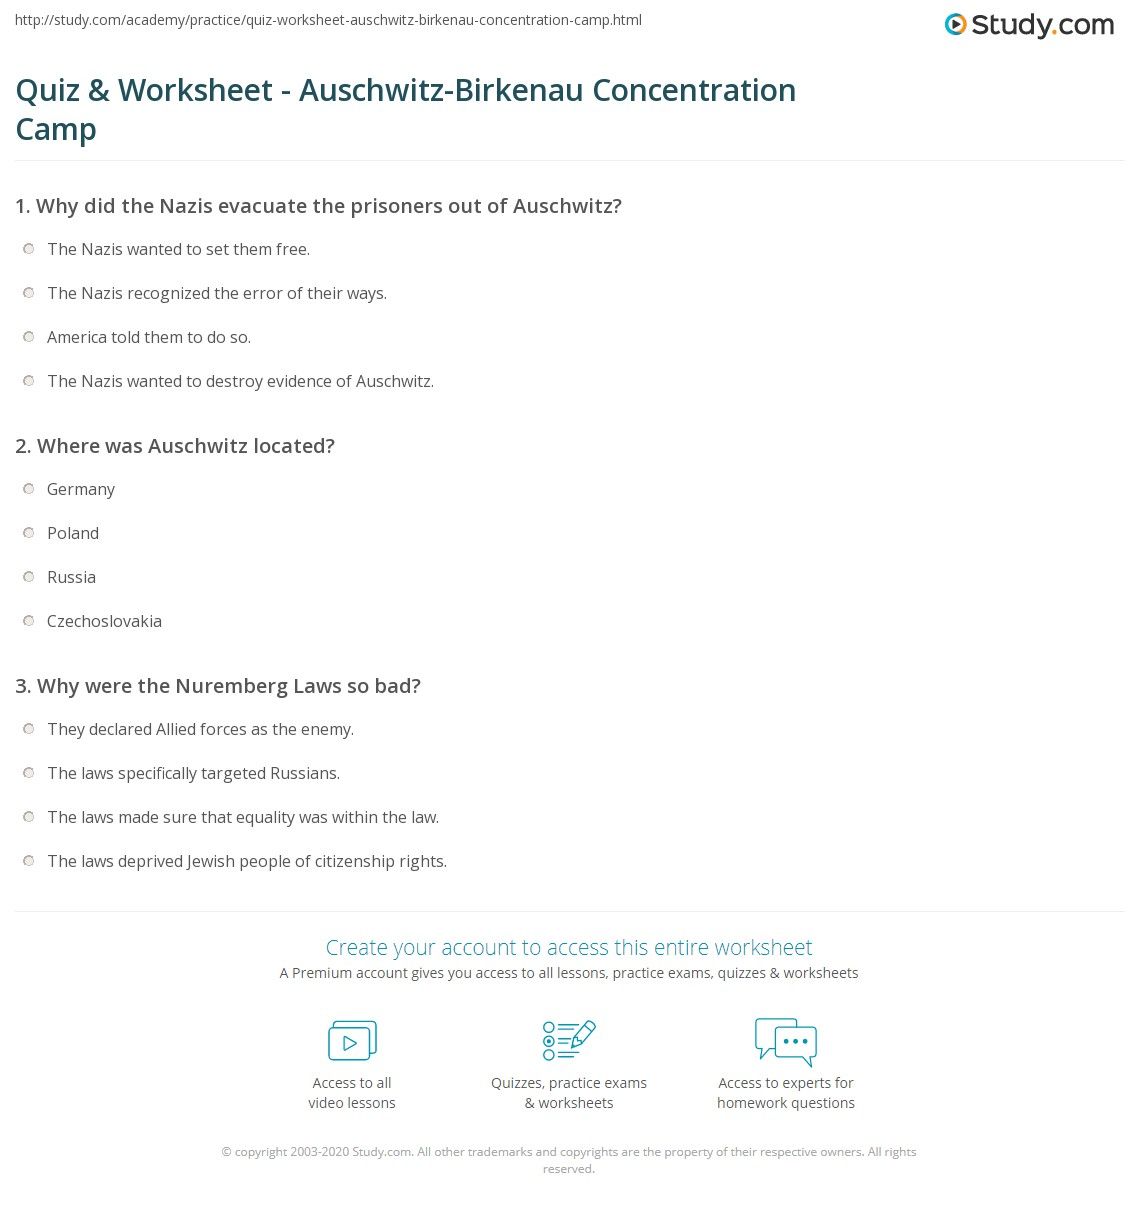 quiz worksheet auschwitz birkenau concentration camp study com print auschwitz birkenau concentration camp facts liberation worksheet